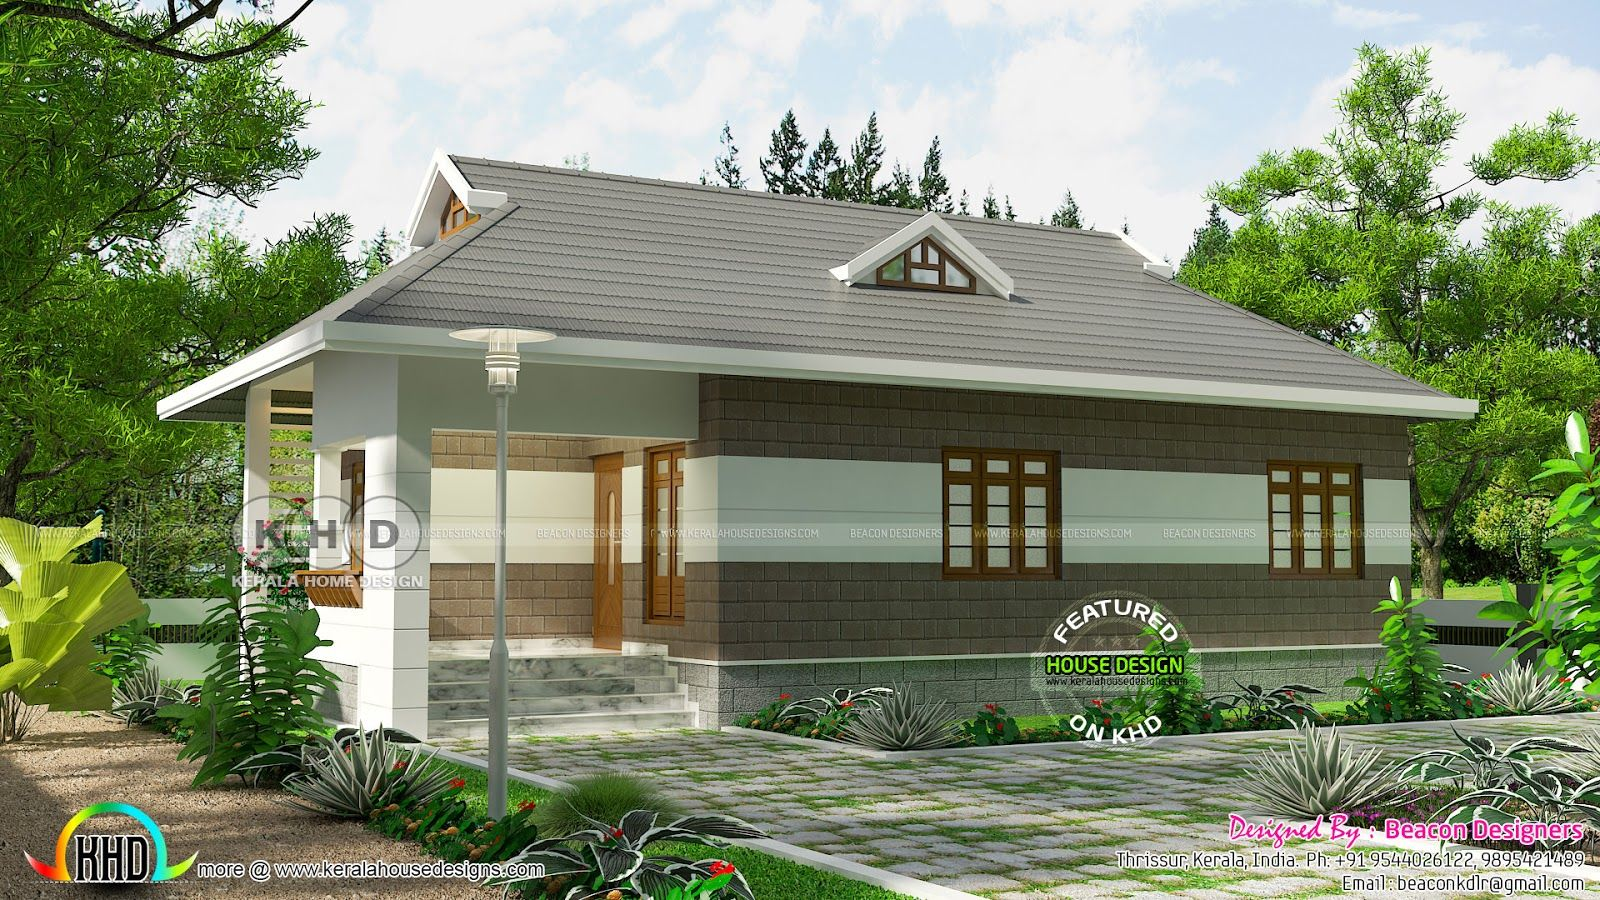 Low Cost House Plans In Kerala Style in 2020 (With images ...